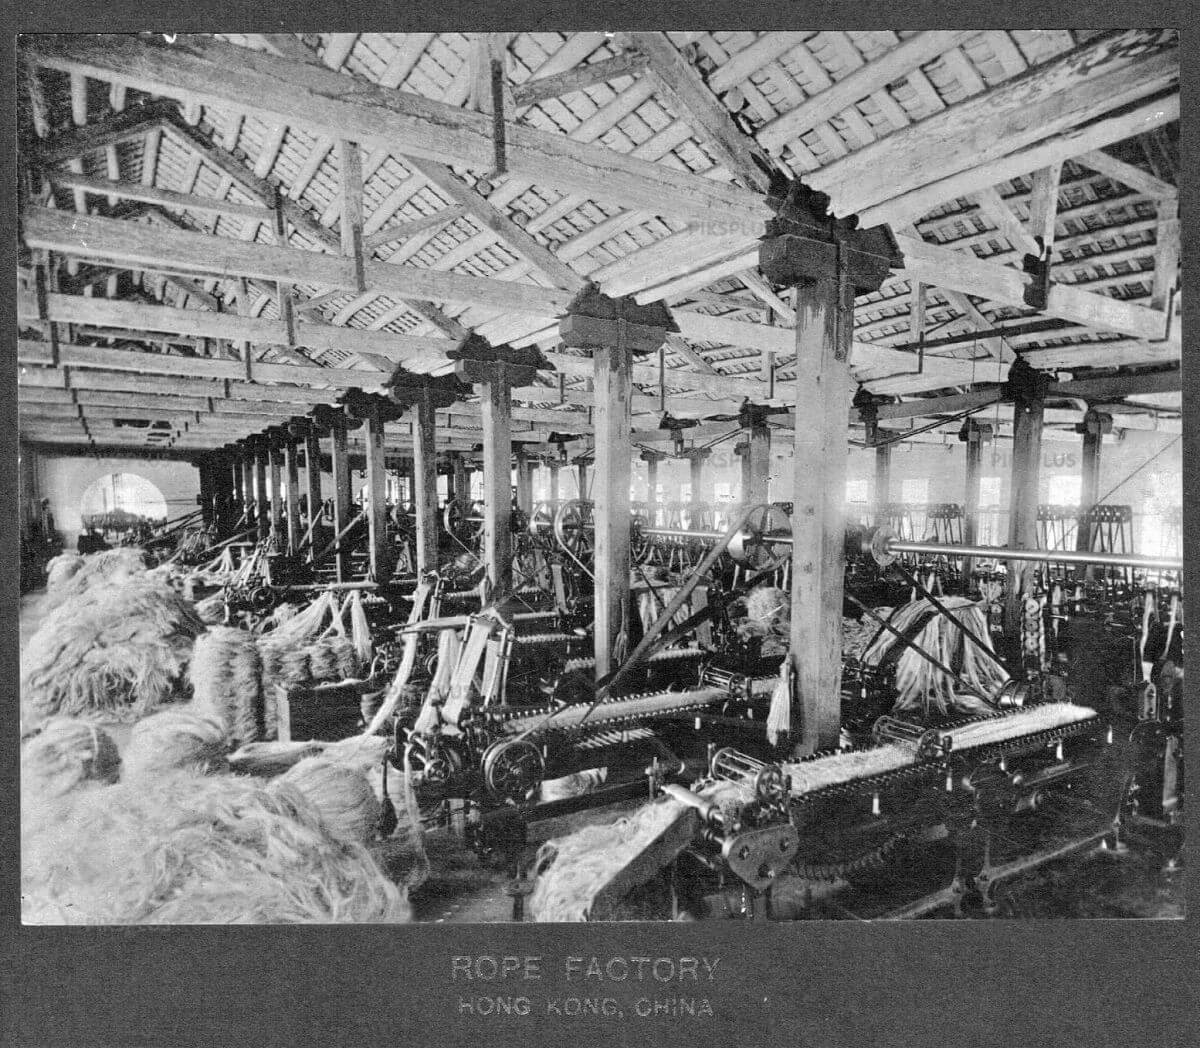 Hong Kong Rope Manufacturing Company undated image from IDJ